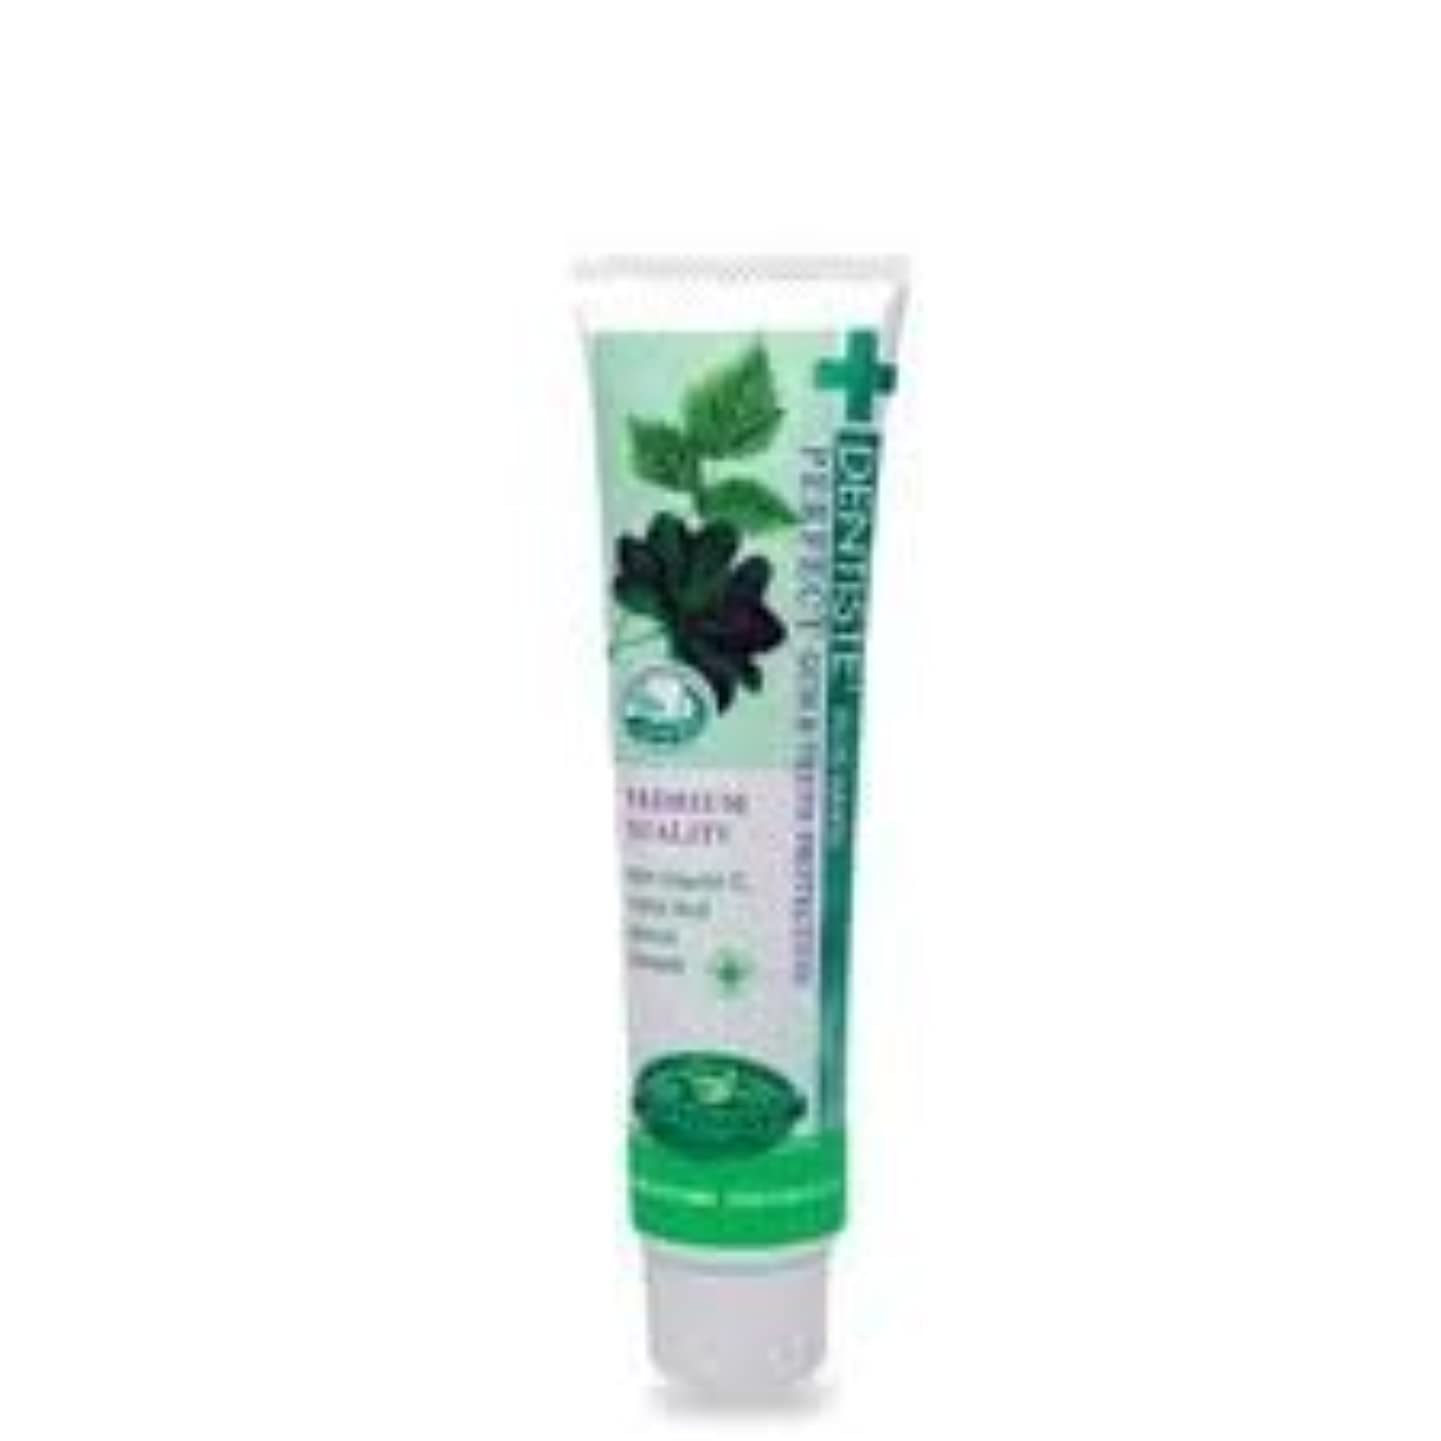 ジュラシックパークナプキンブリードDentiste Night Time Active Whitening Toothpaste 100 G Thailand Product by Dentiste